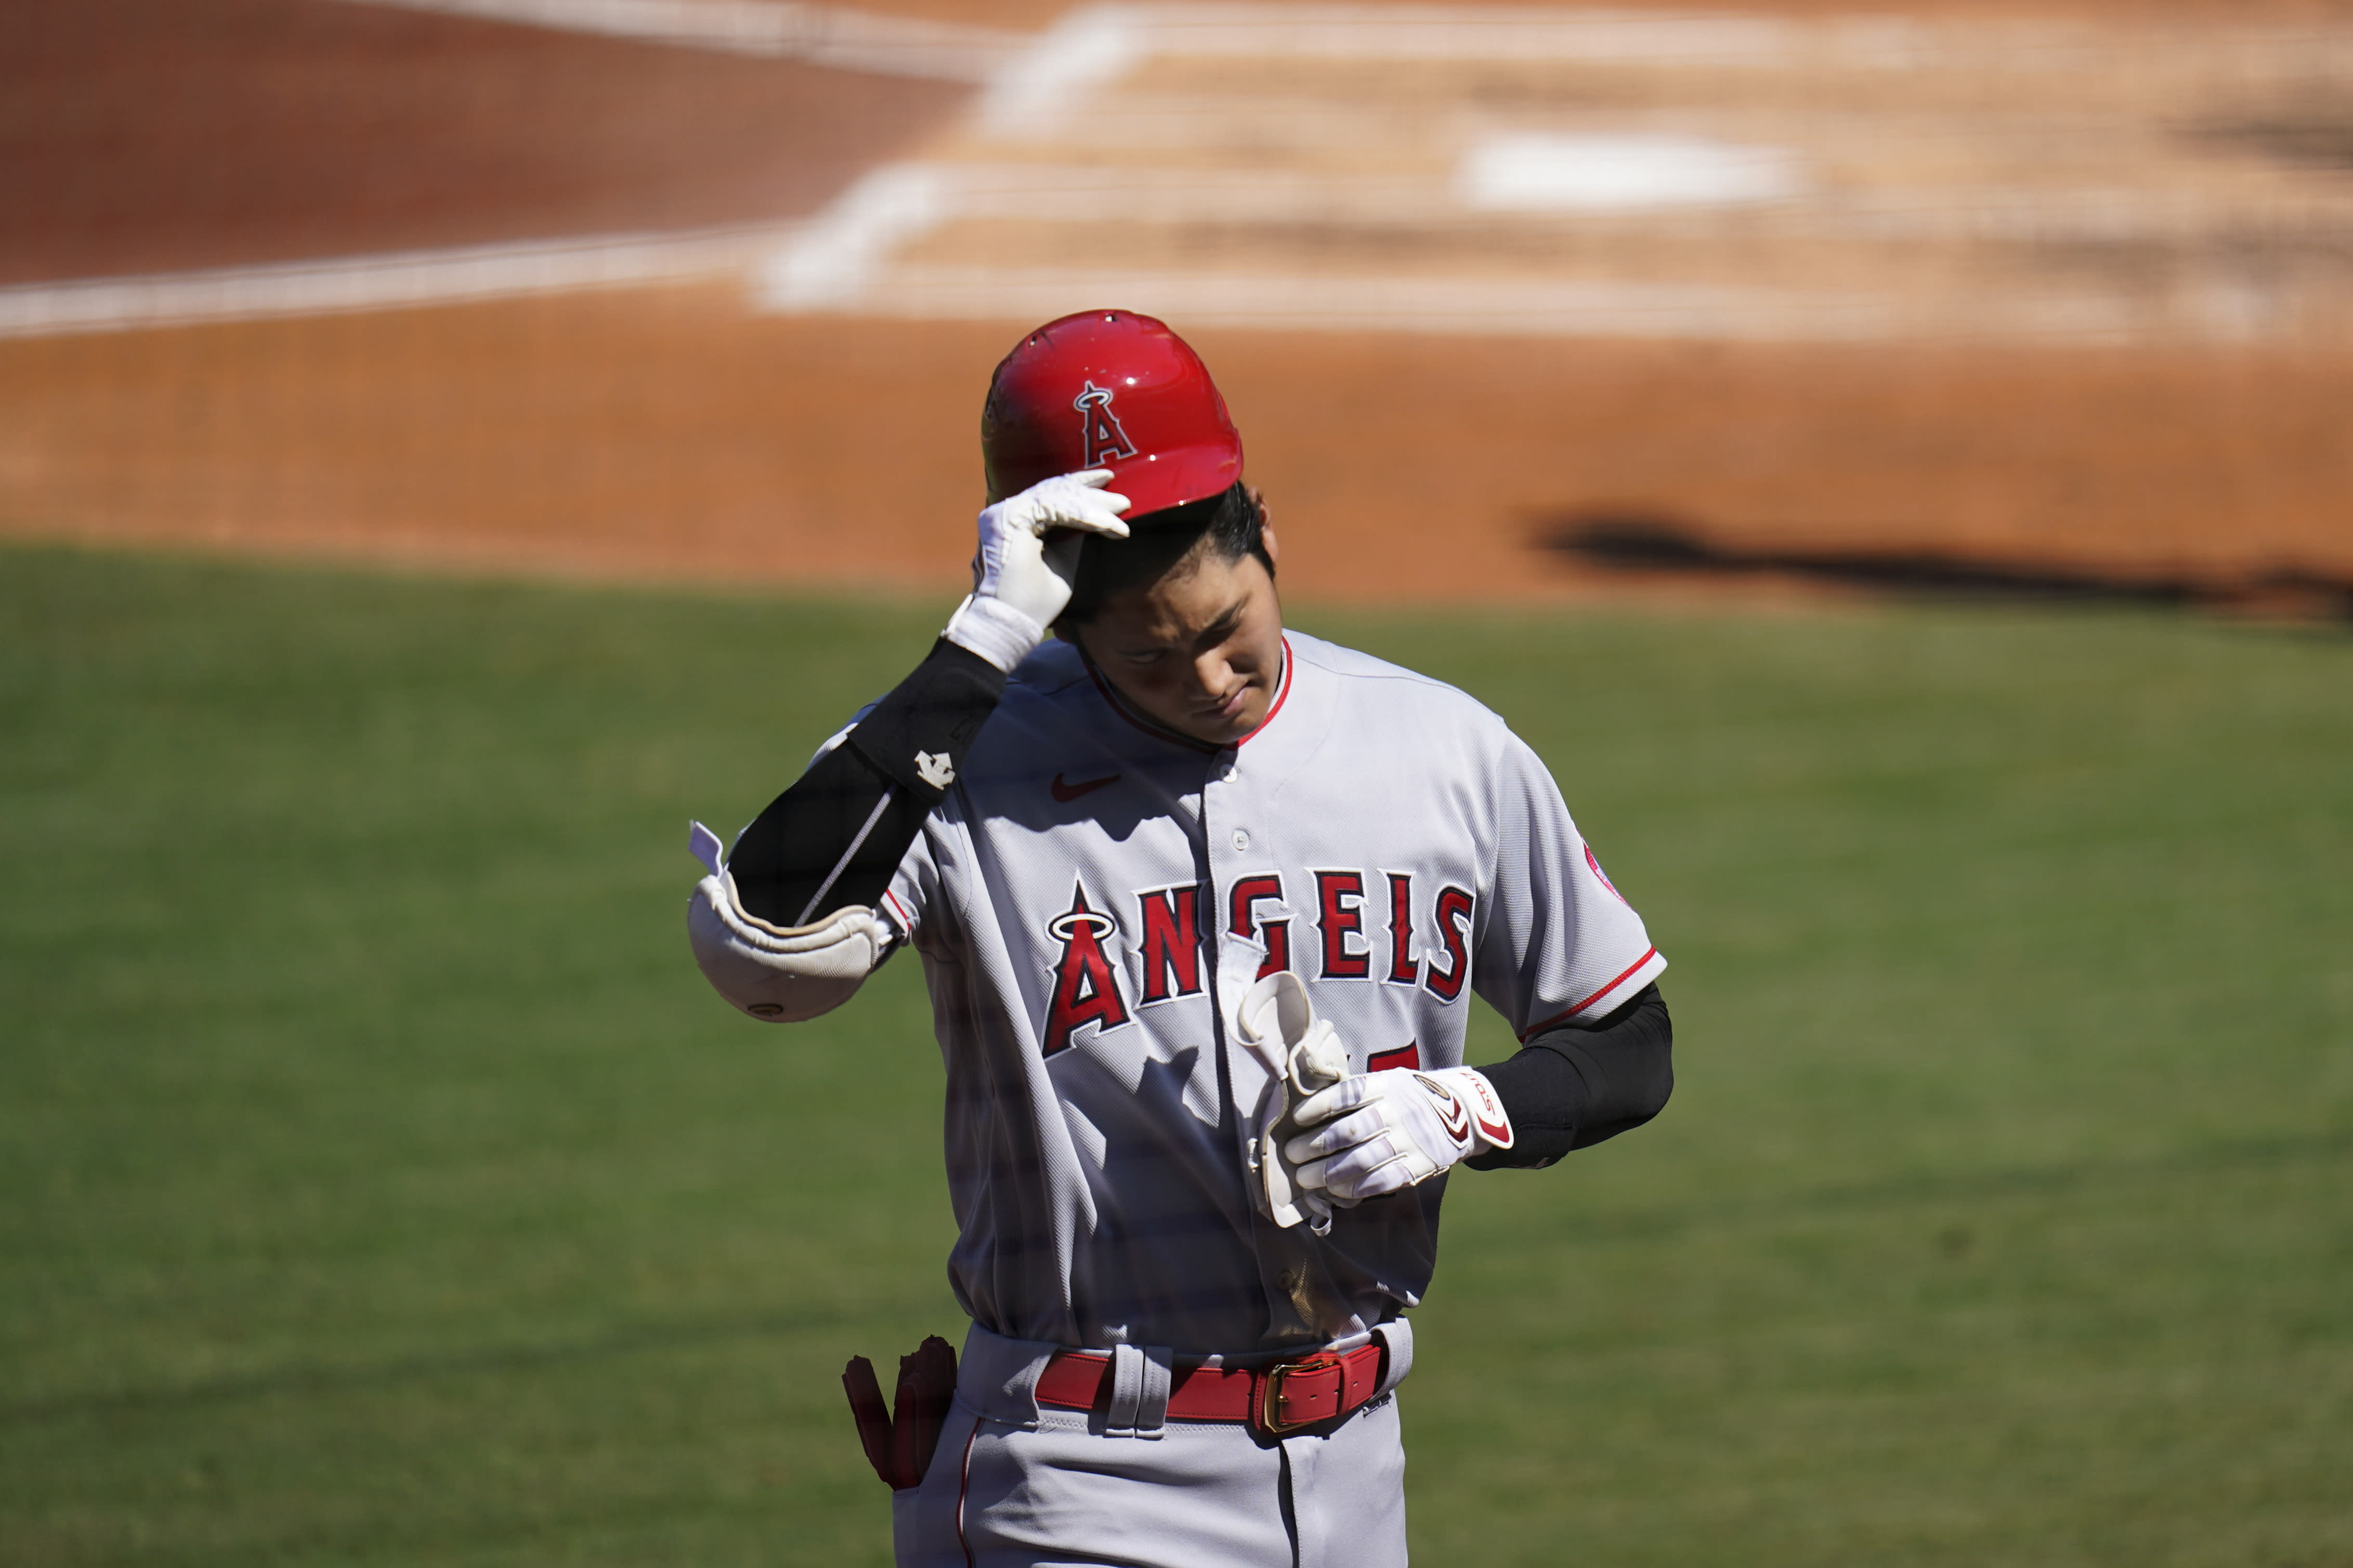 Los Angeles Angels' Shohei Ohtani walks back to the dugout after batting during the third inning of a baseball game against the San Diego Padres, Wednesday, Sept. 23, 2020, in San Diego. (AP Photo/Gregory Bull)